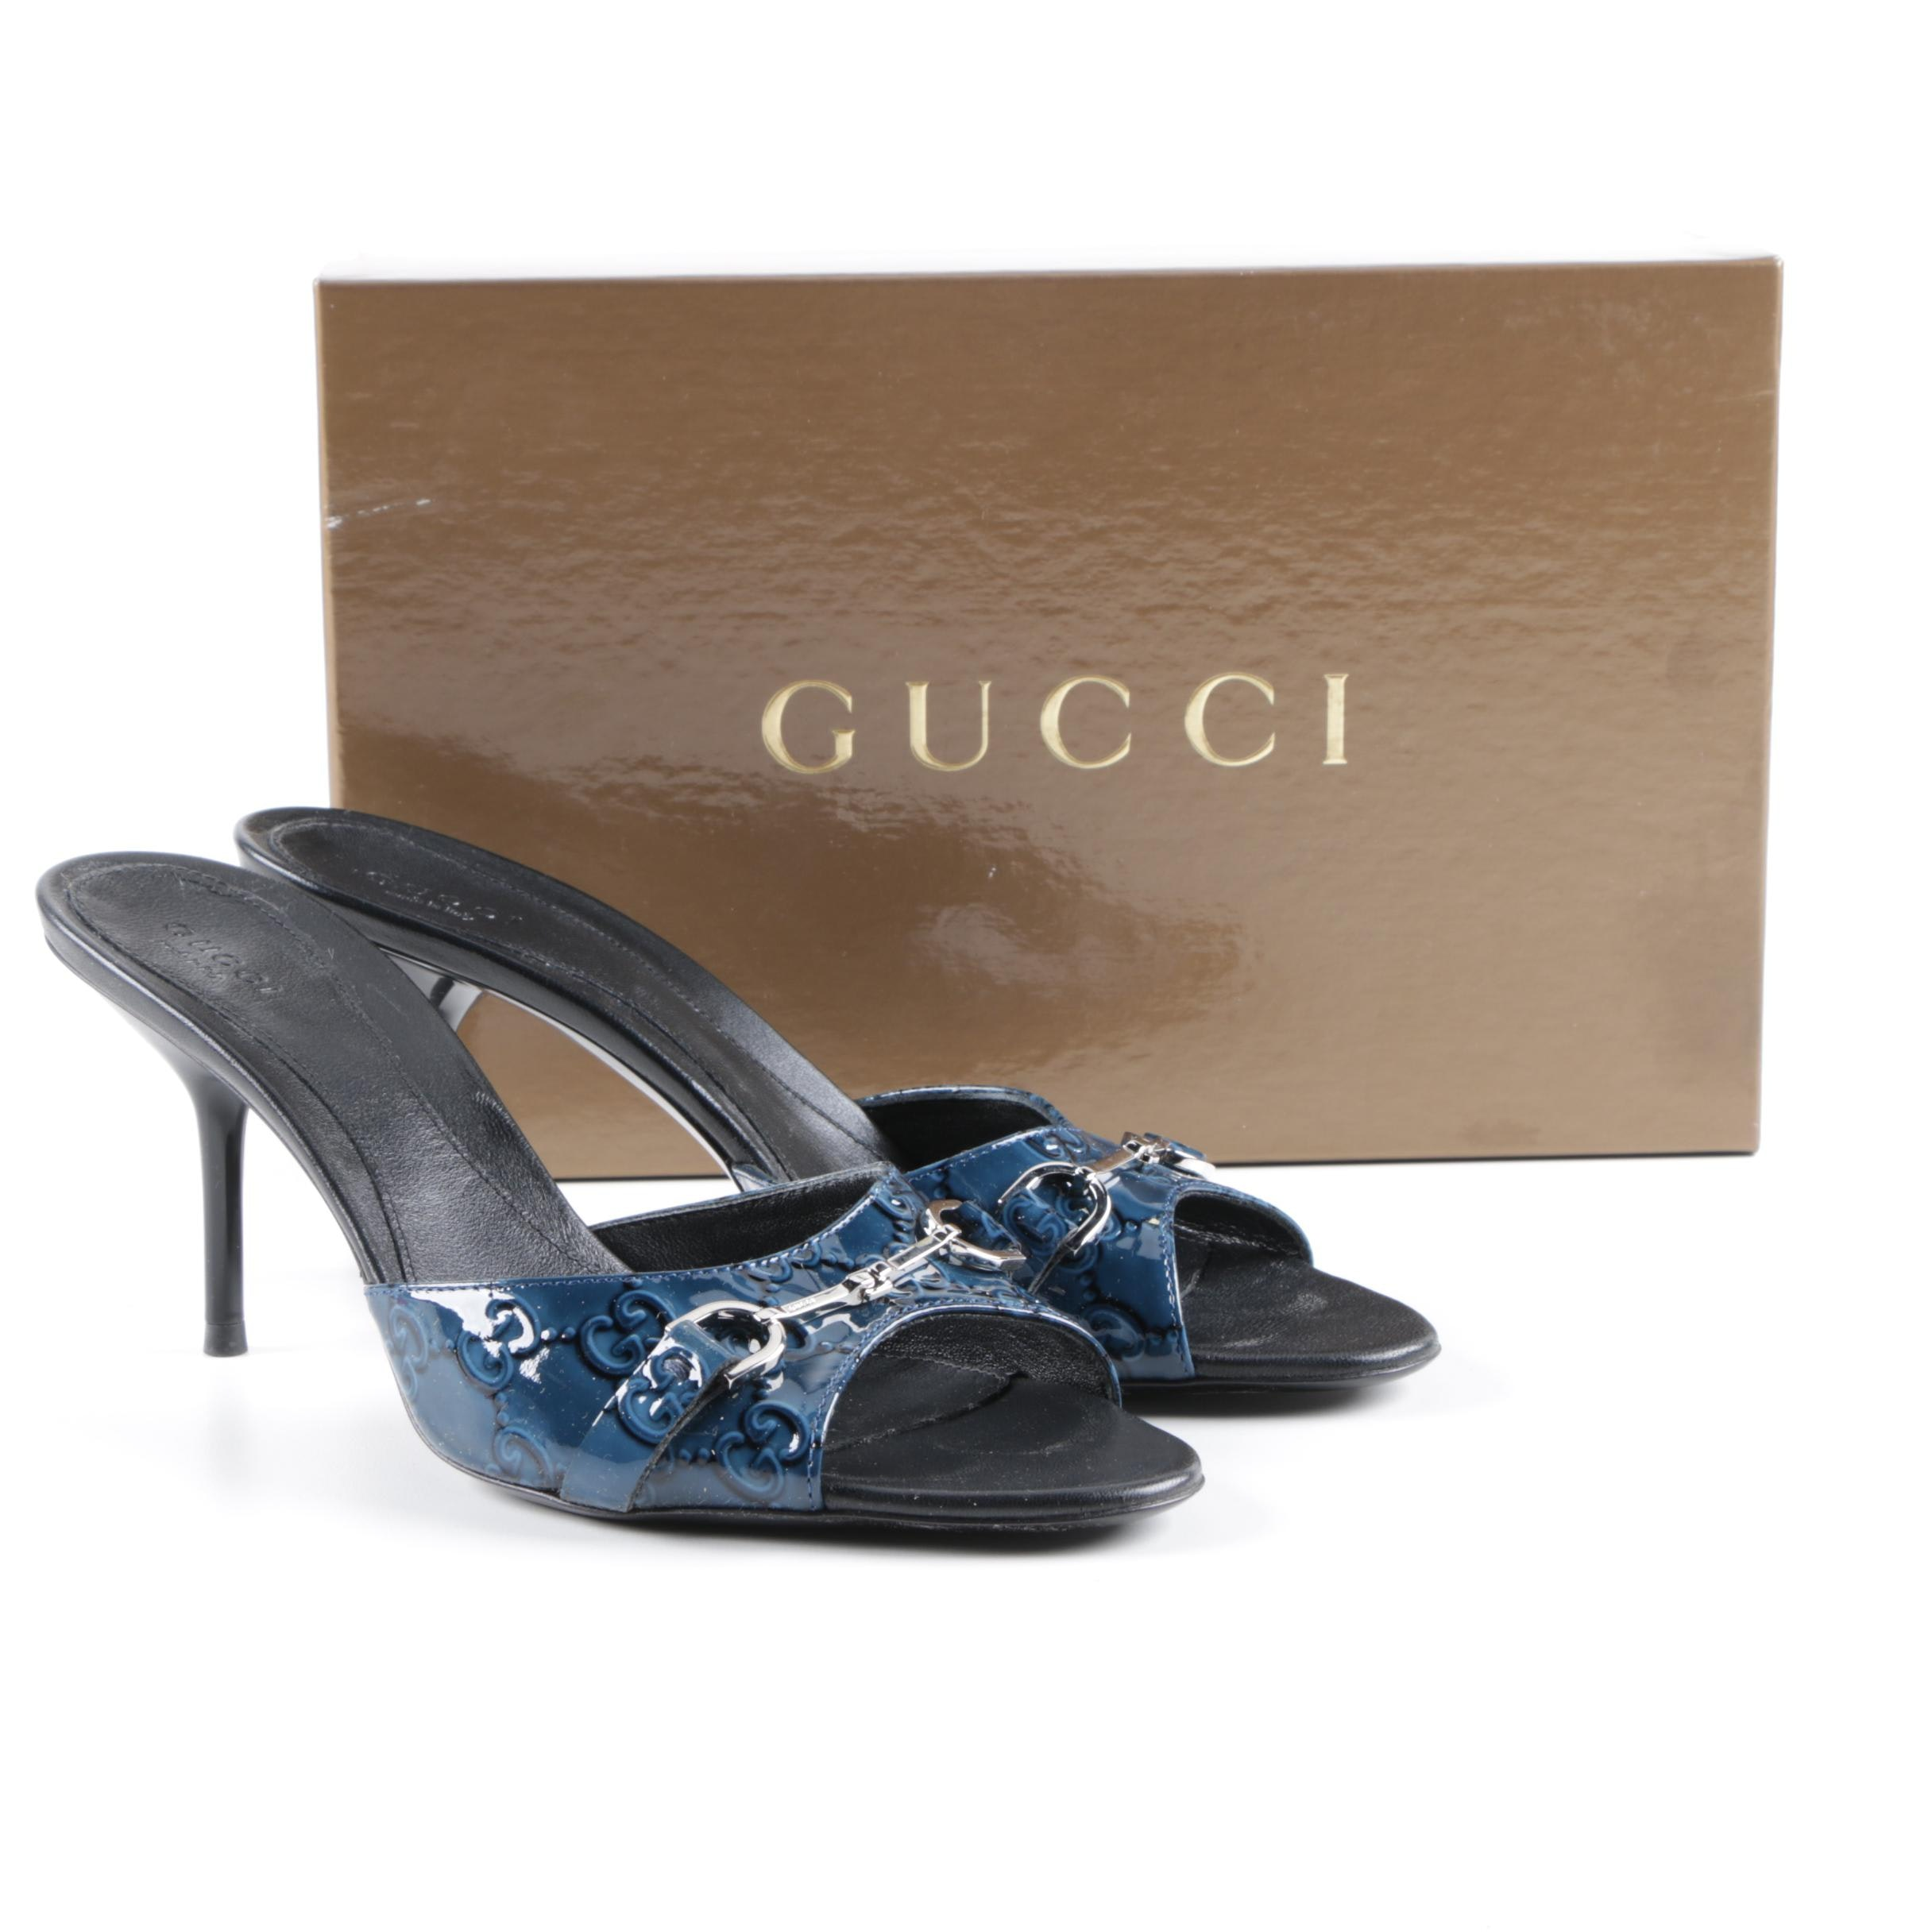 Gucci Guccissima Blue Patent Leather Heeled Sandals